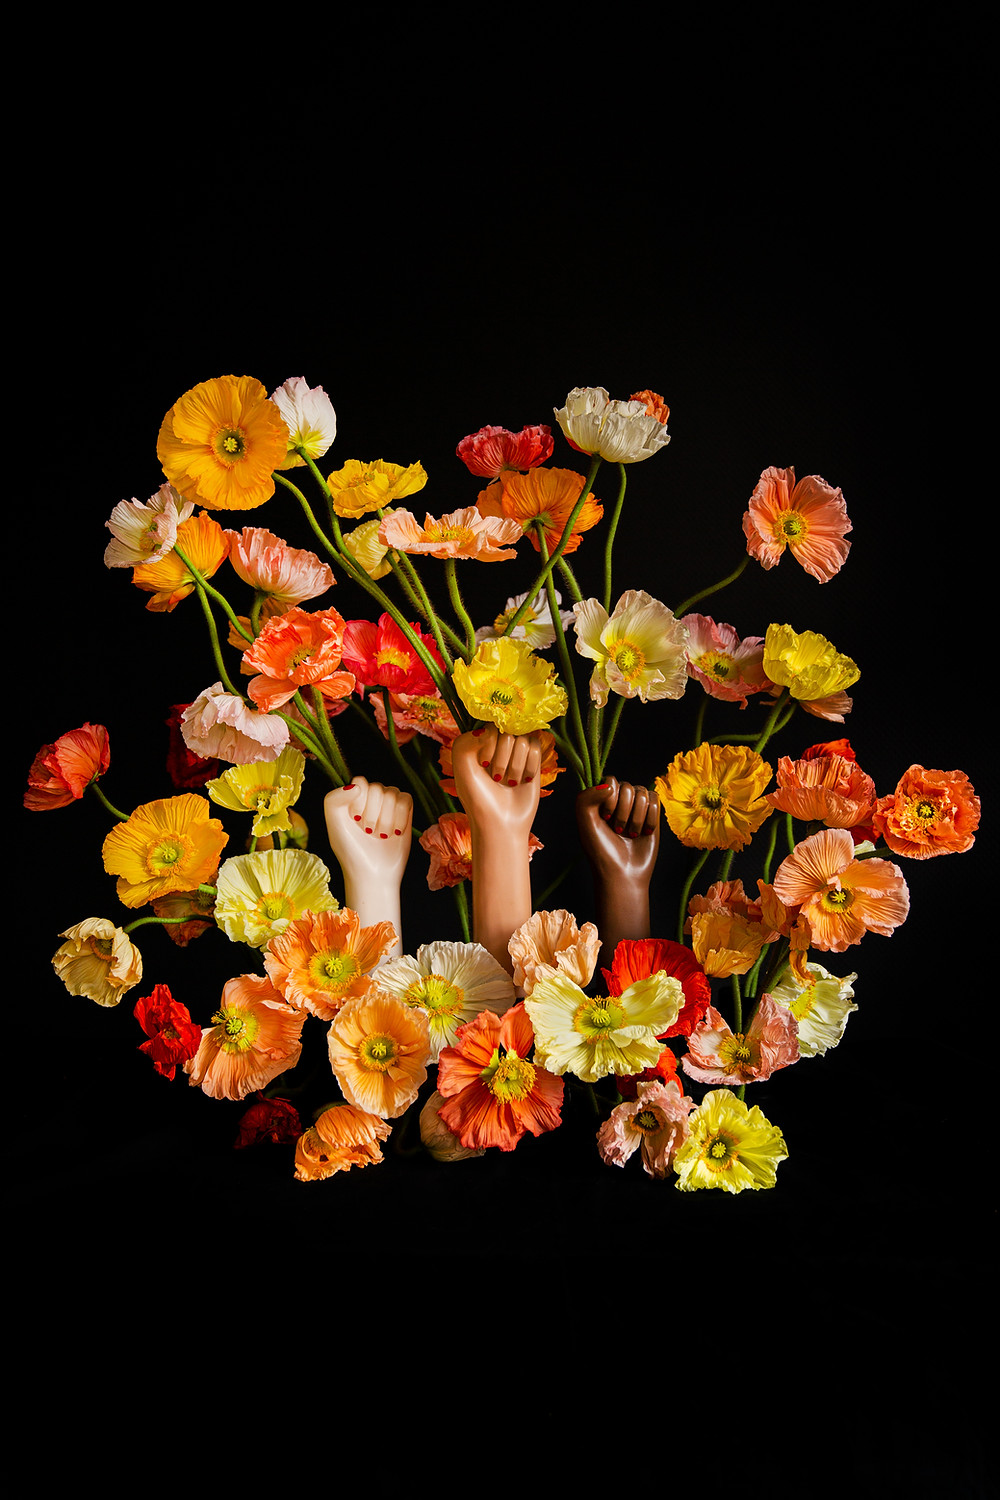 colorful poppies with girlpower vases